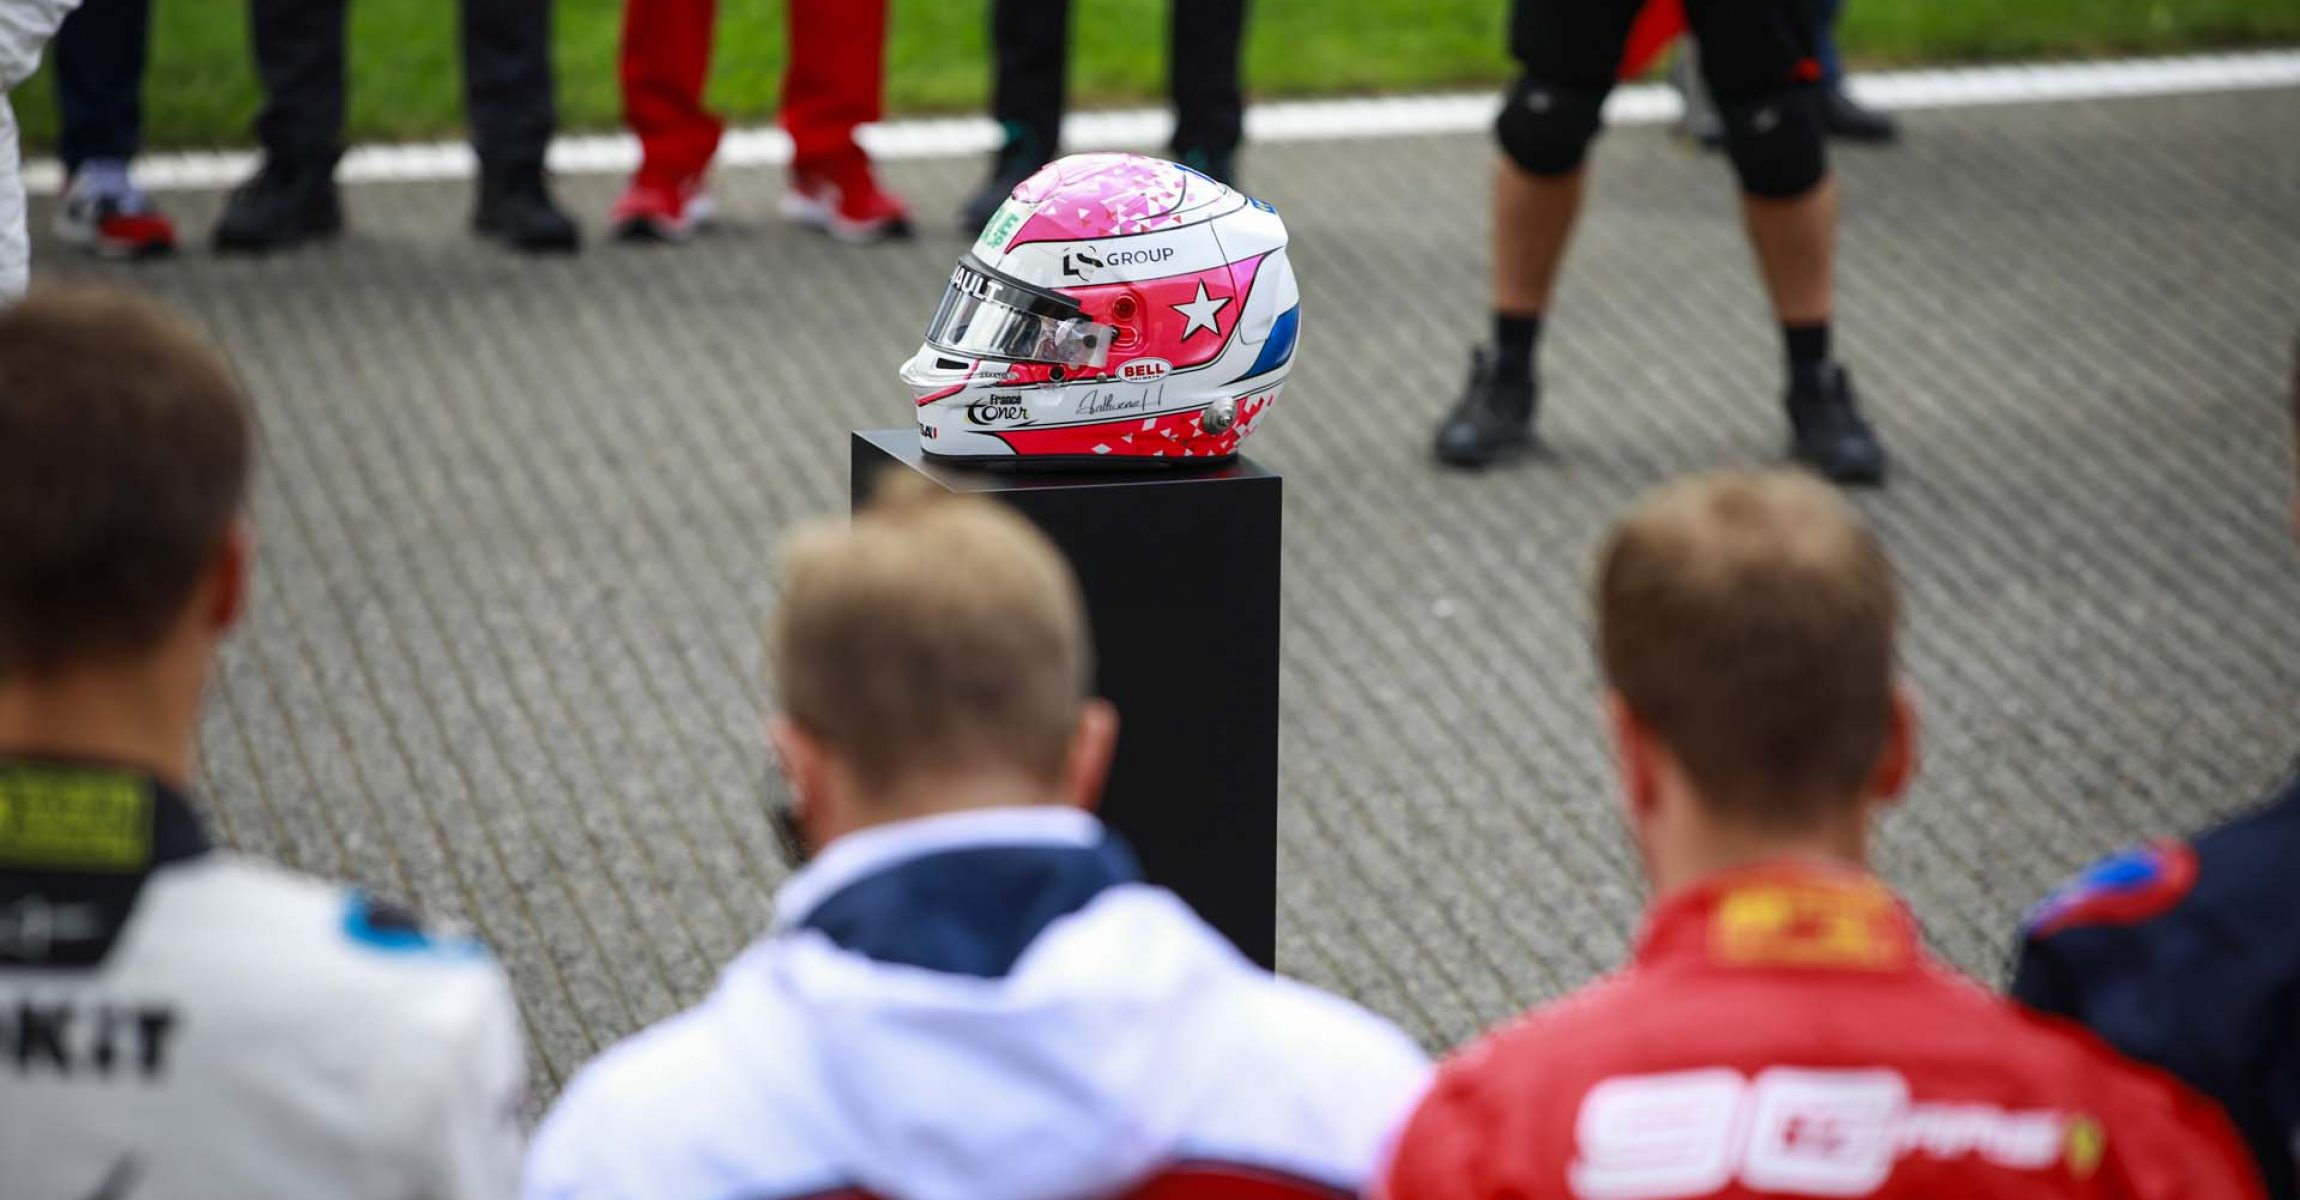 Tribute to Anthoine Hubert before the start of the race during the 2019 Formula One World Championship, Belgium Grand Prix from August 29 to september 1 in Spa -Francorchamps, Belgium - Photo Xavi Bonilla / DPPI